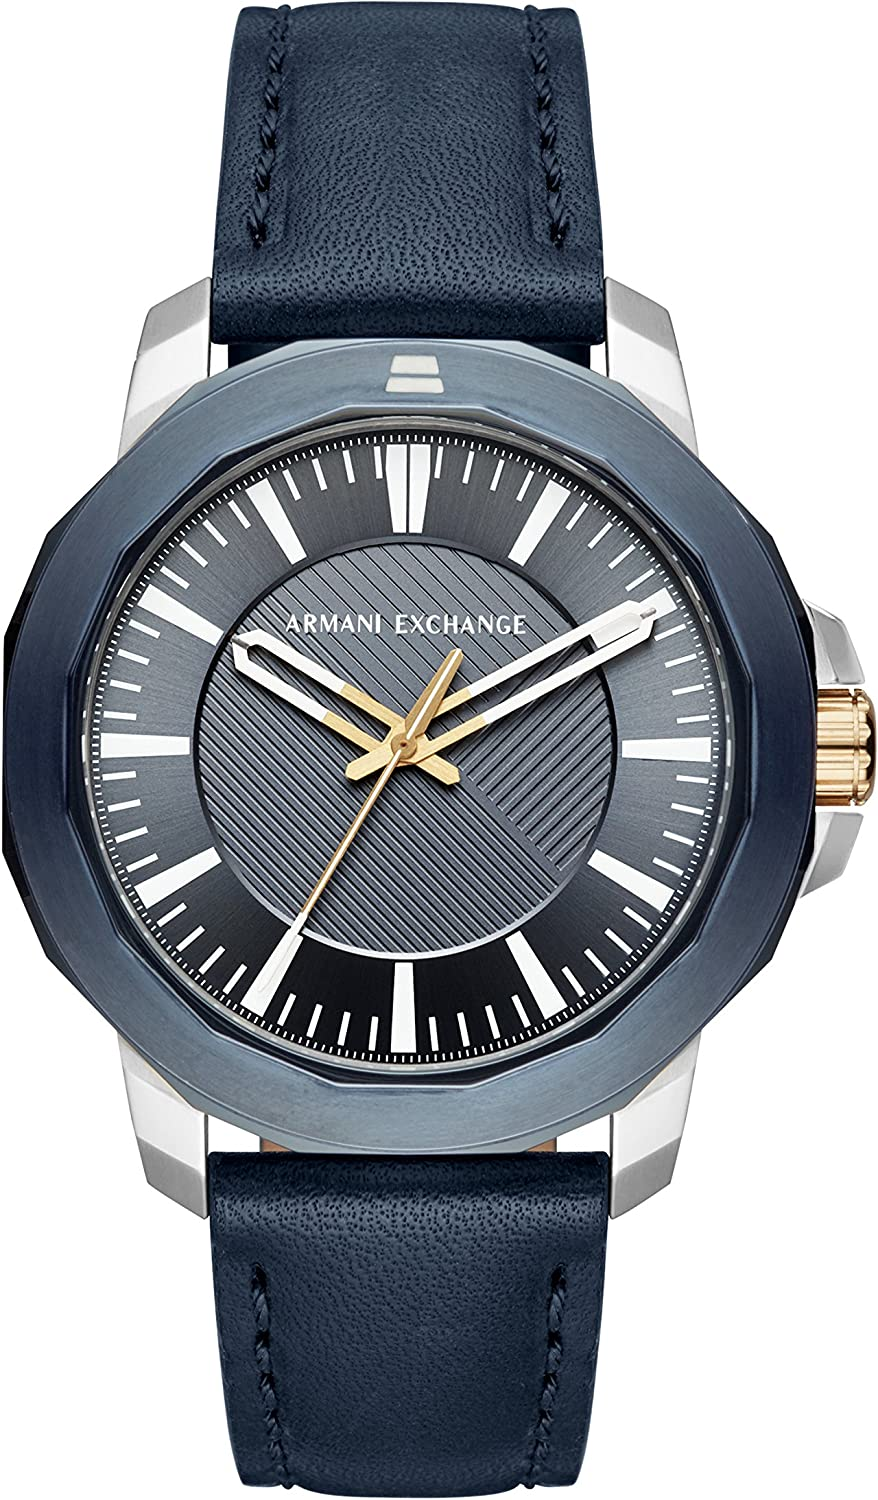 Armani Exchange Men s Stainless Steel Analog-Quartz Watch with Leather Calfskin Strap, Blue, 22 Model AX1905